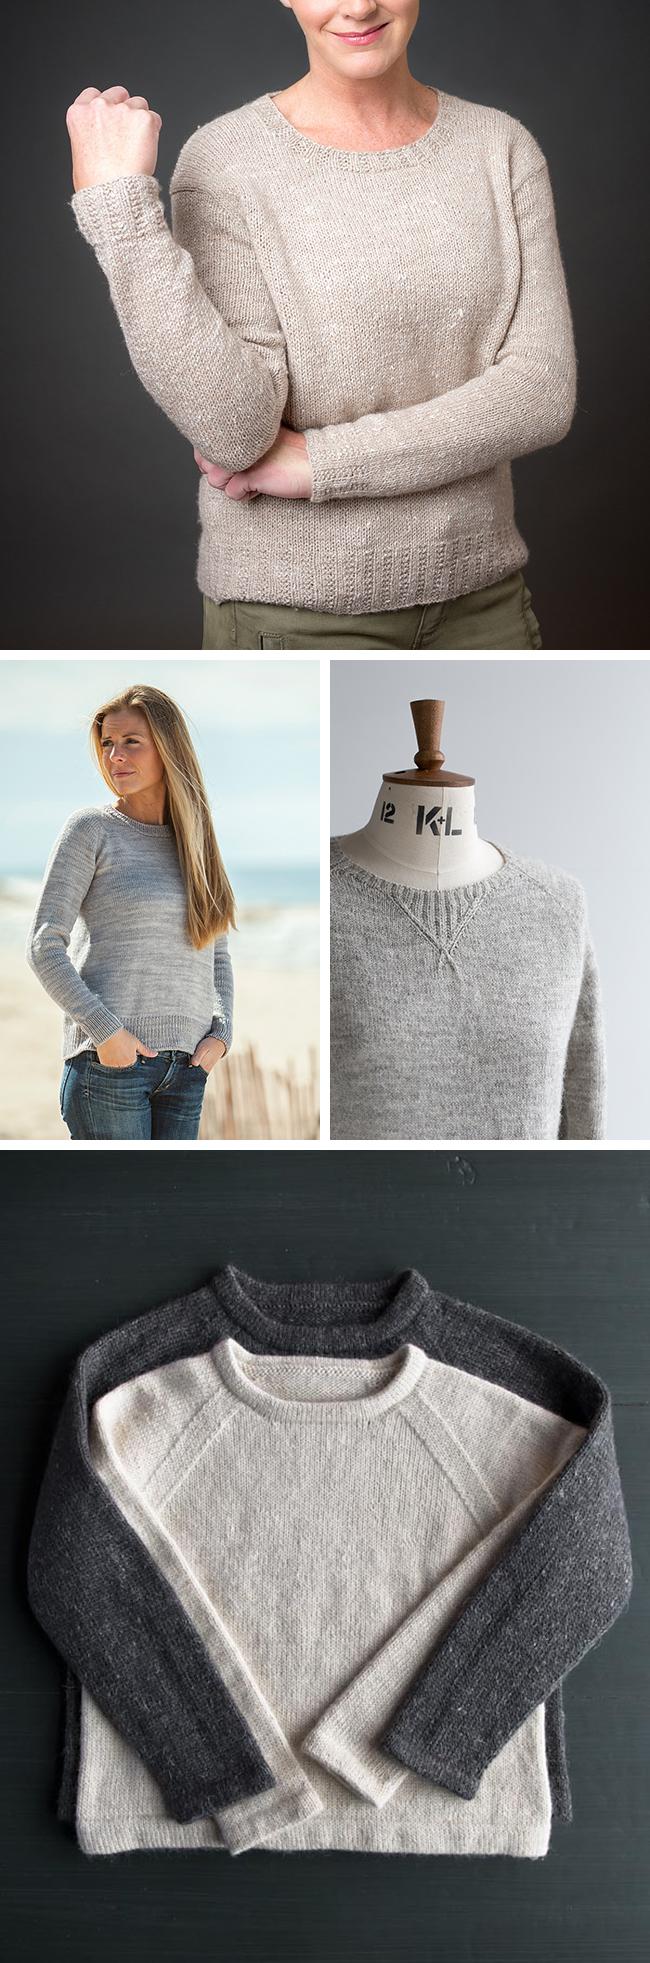 Top: Echo Lake by Courtney Kelley / middle left: Tide Chart by Amy Miller / middle right: Polwarth by Ysolda Teague / bottom: Classic Hemmed Crewneck by Purl Soho Image courtesy of Fringe Association.